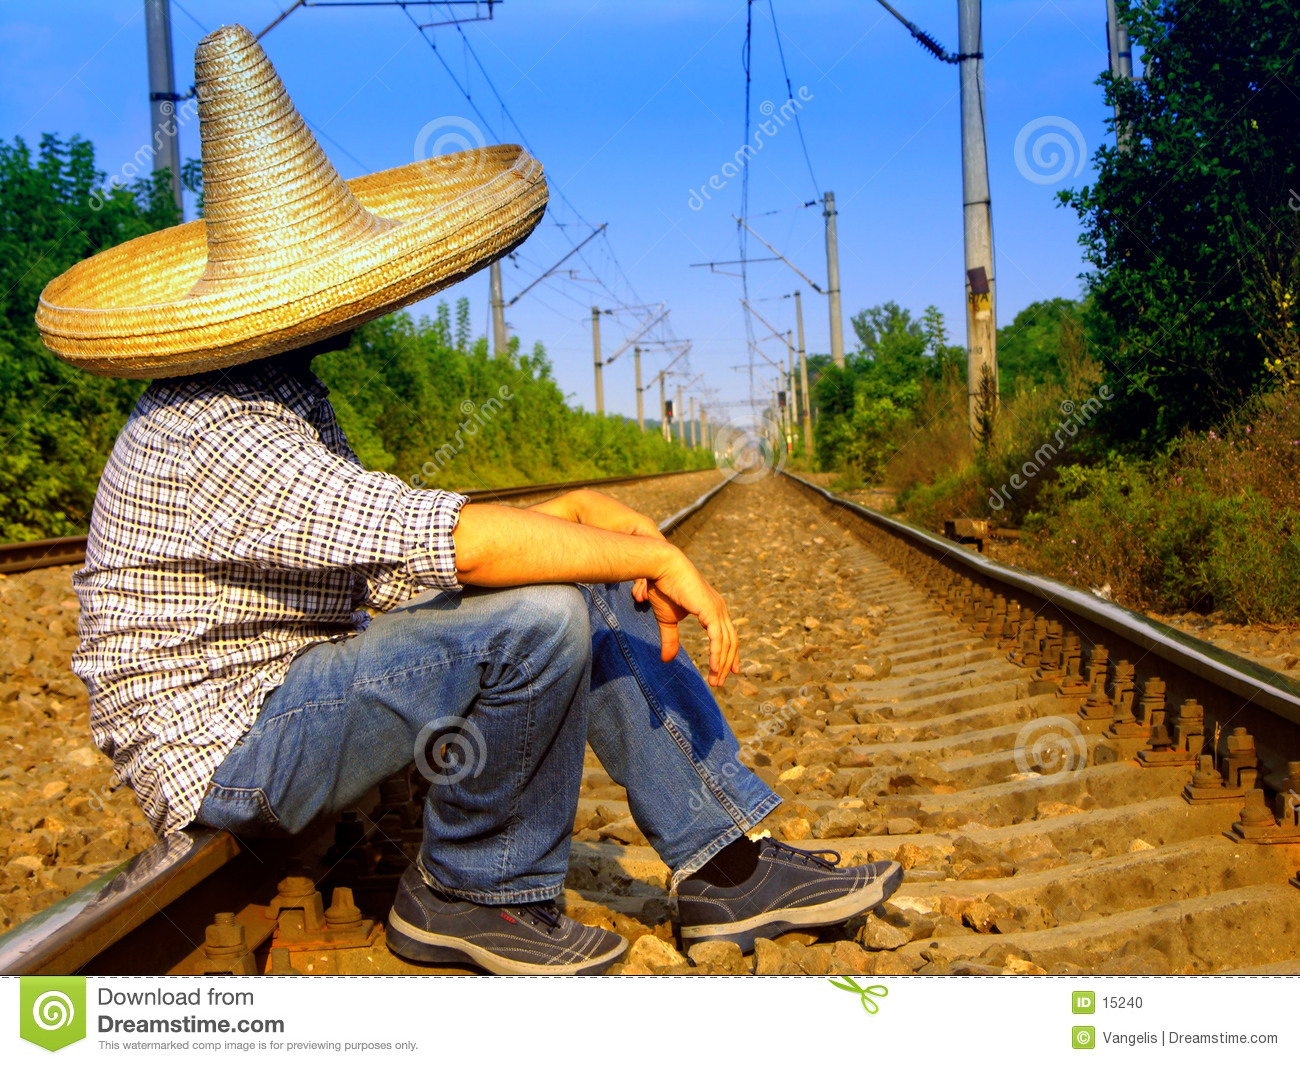 Mexicain attendant le train